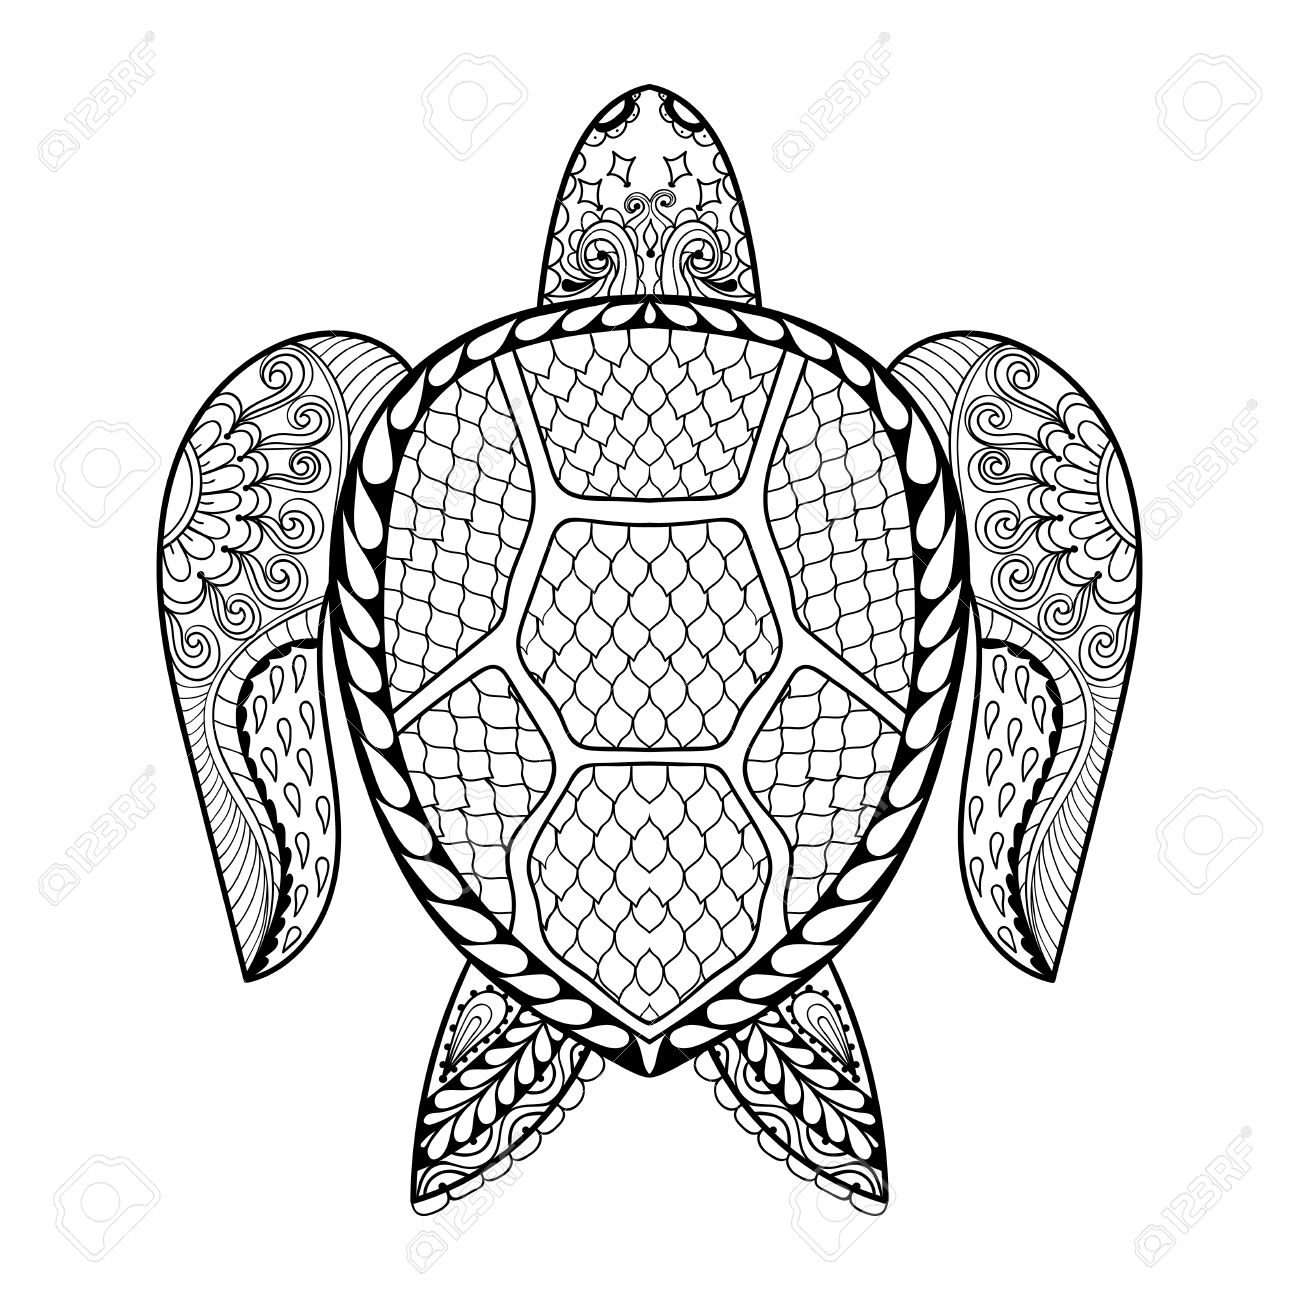 Hand Drawn Sea Turtle Mascot For Adult Coloring Pages In Doodle Zentangle Tribal Style